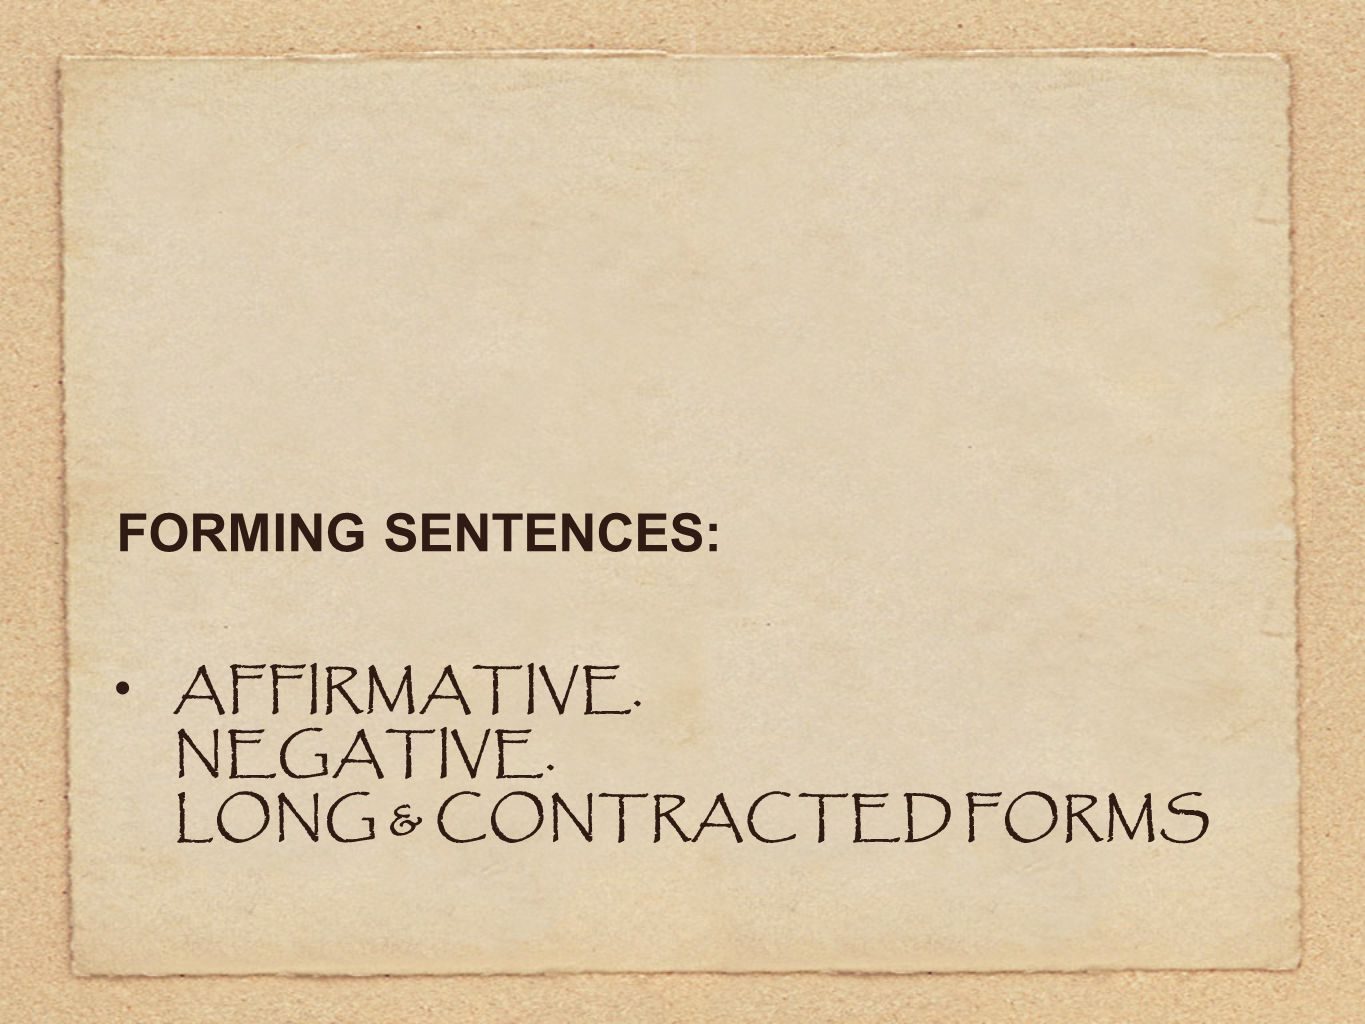 AFFIRMATIVE. NEGATIVE. LONG & CONTRACTED FORMS FORMING SENTENCES: